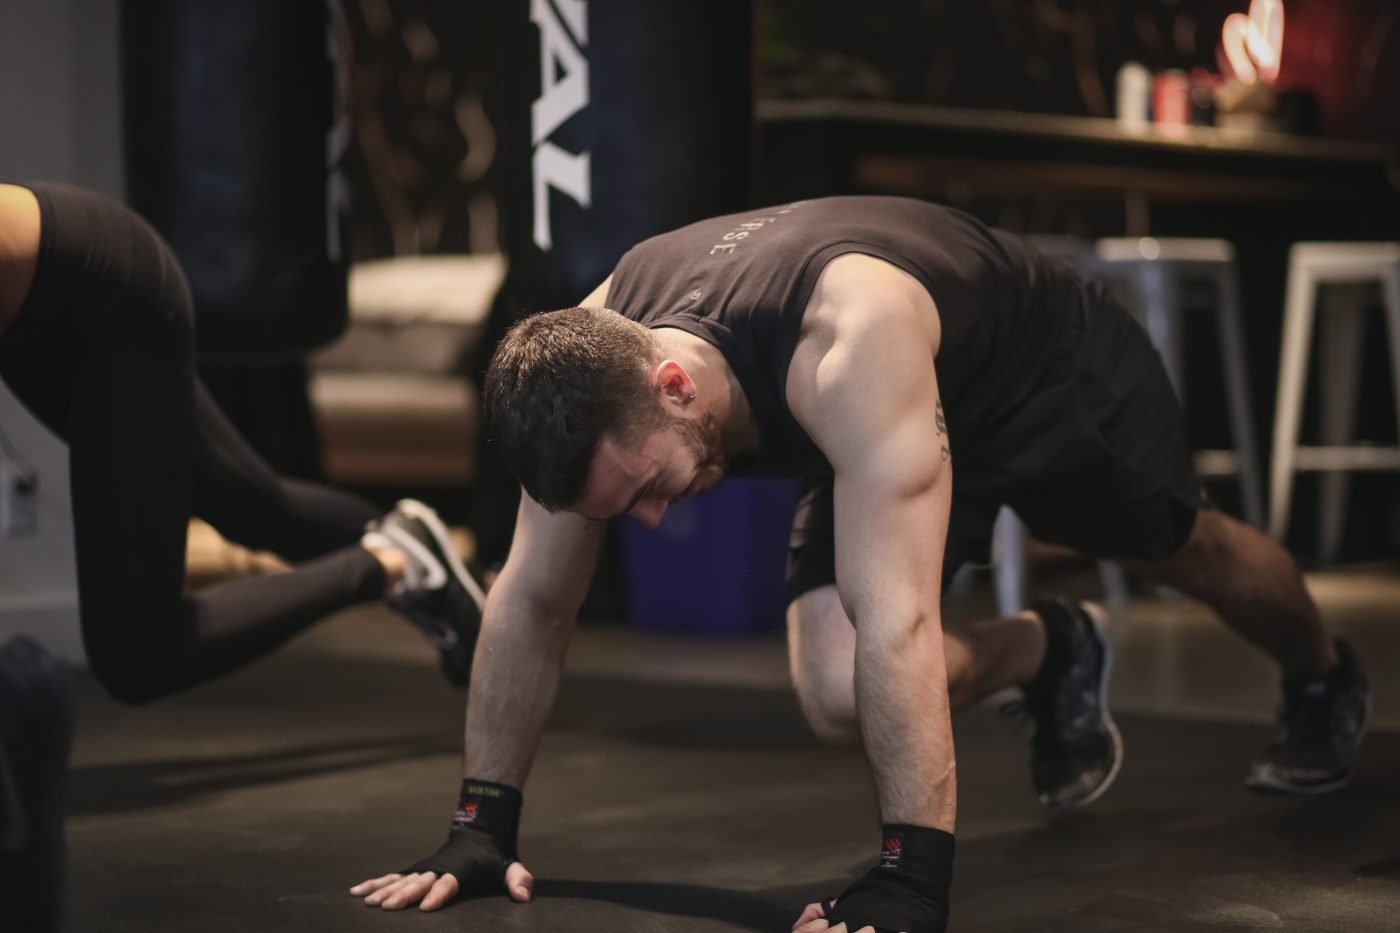 MONDAY WORKOUT ROUTINE – Home HIIT